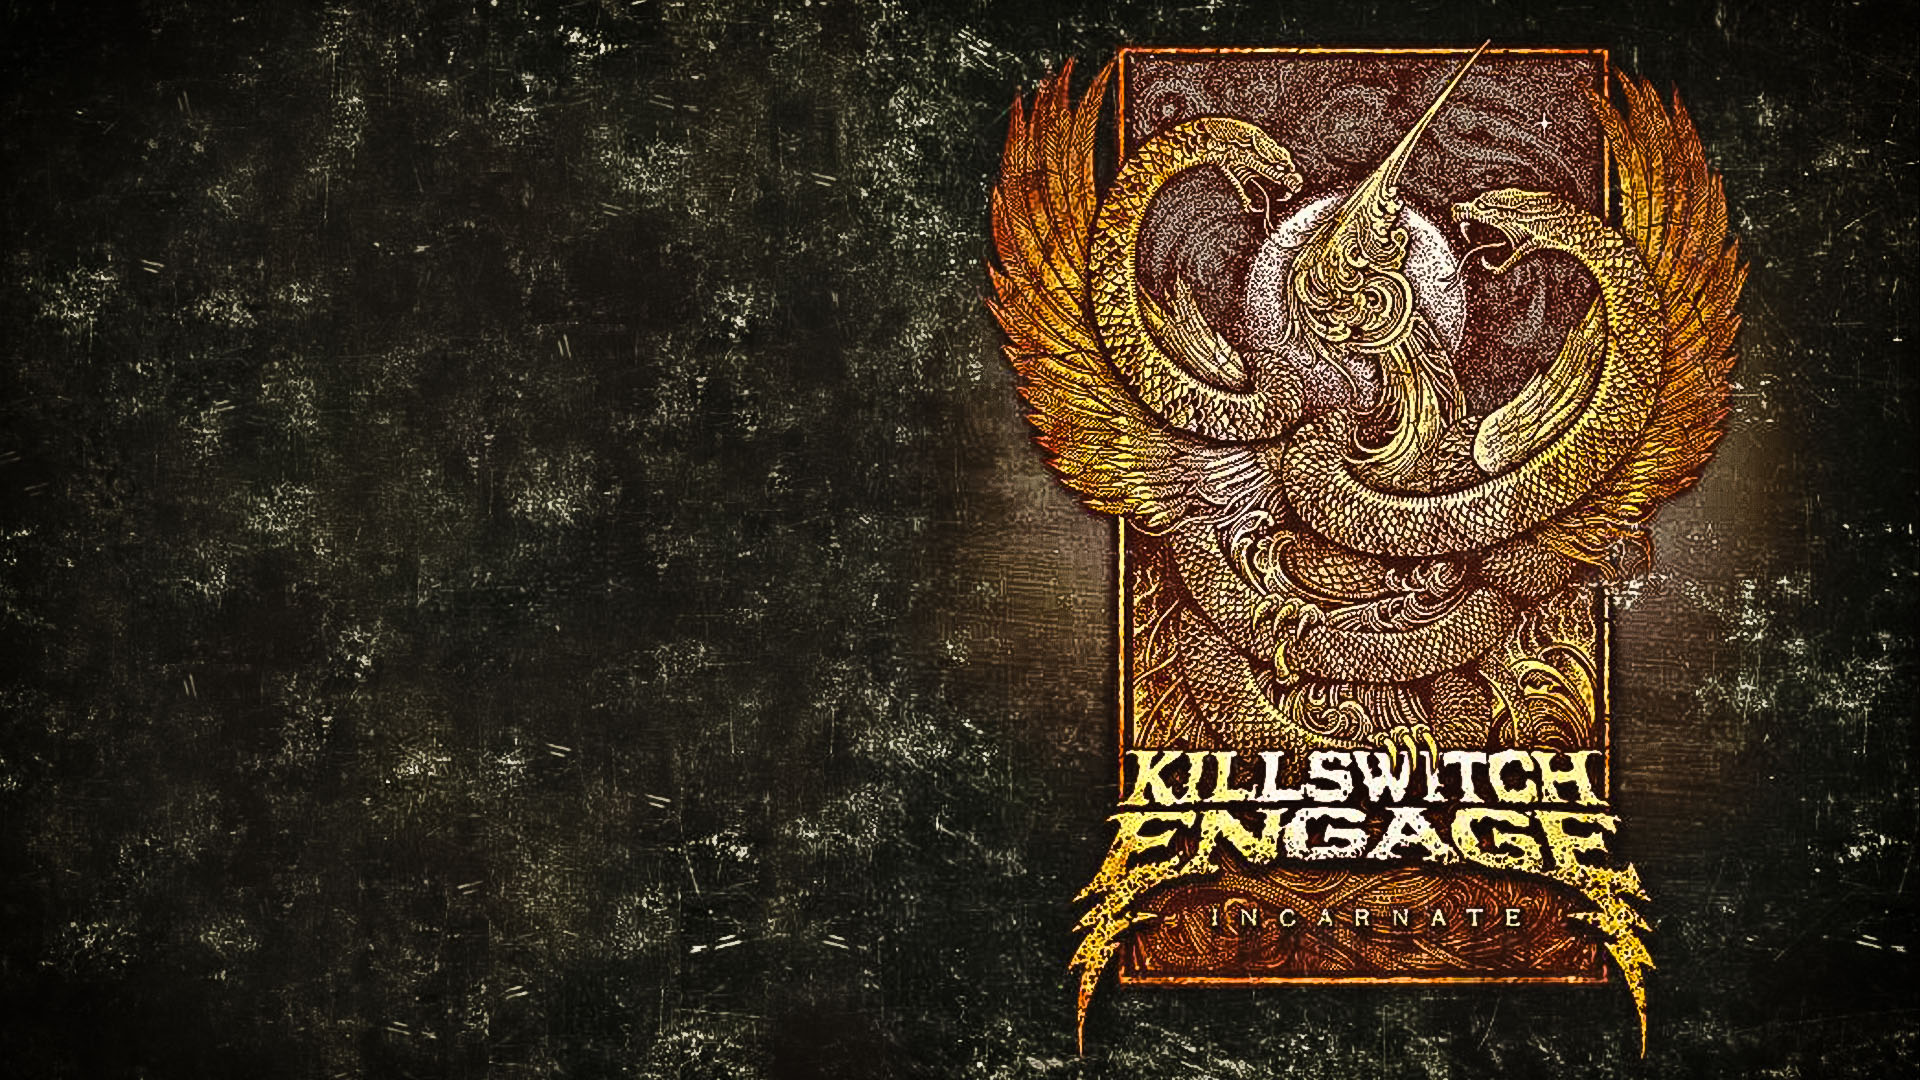 Y3A9Y72 Killswitch Engage IPhone Wallpaper 1920x1080 px   Picseriocom 1920x1080